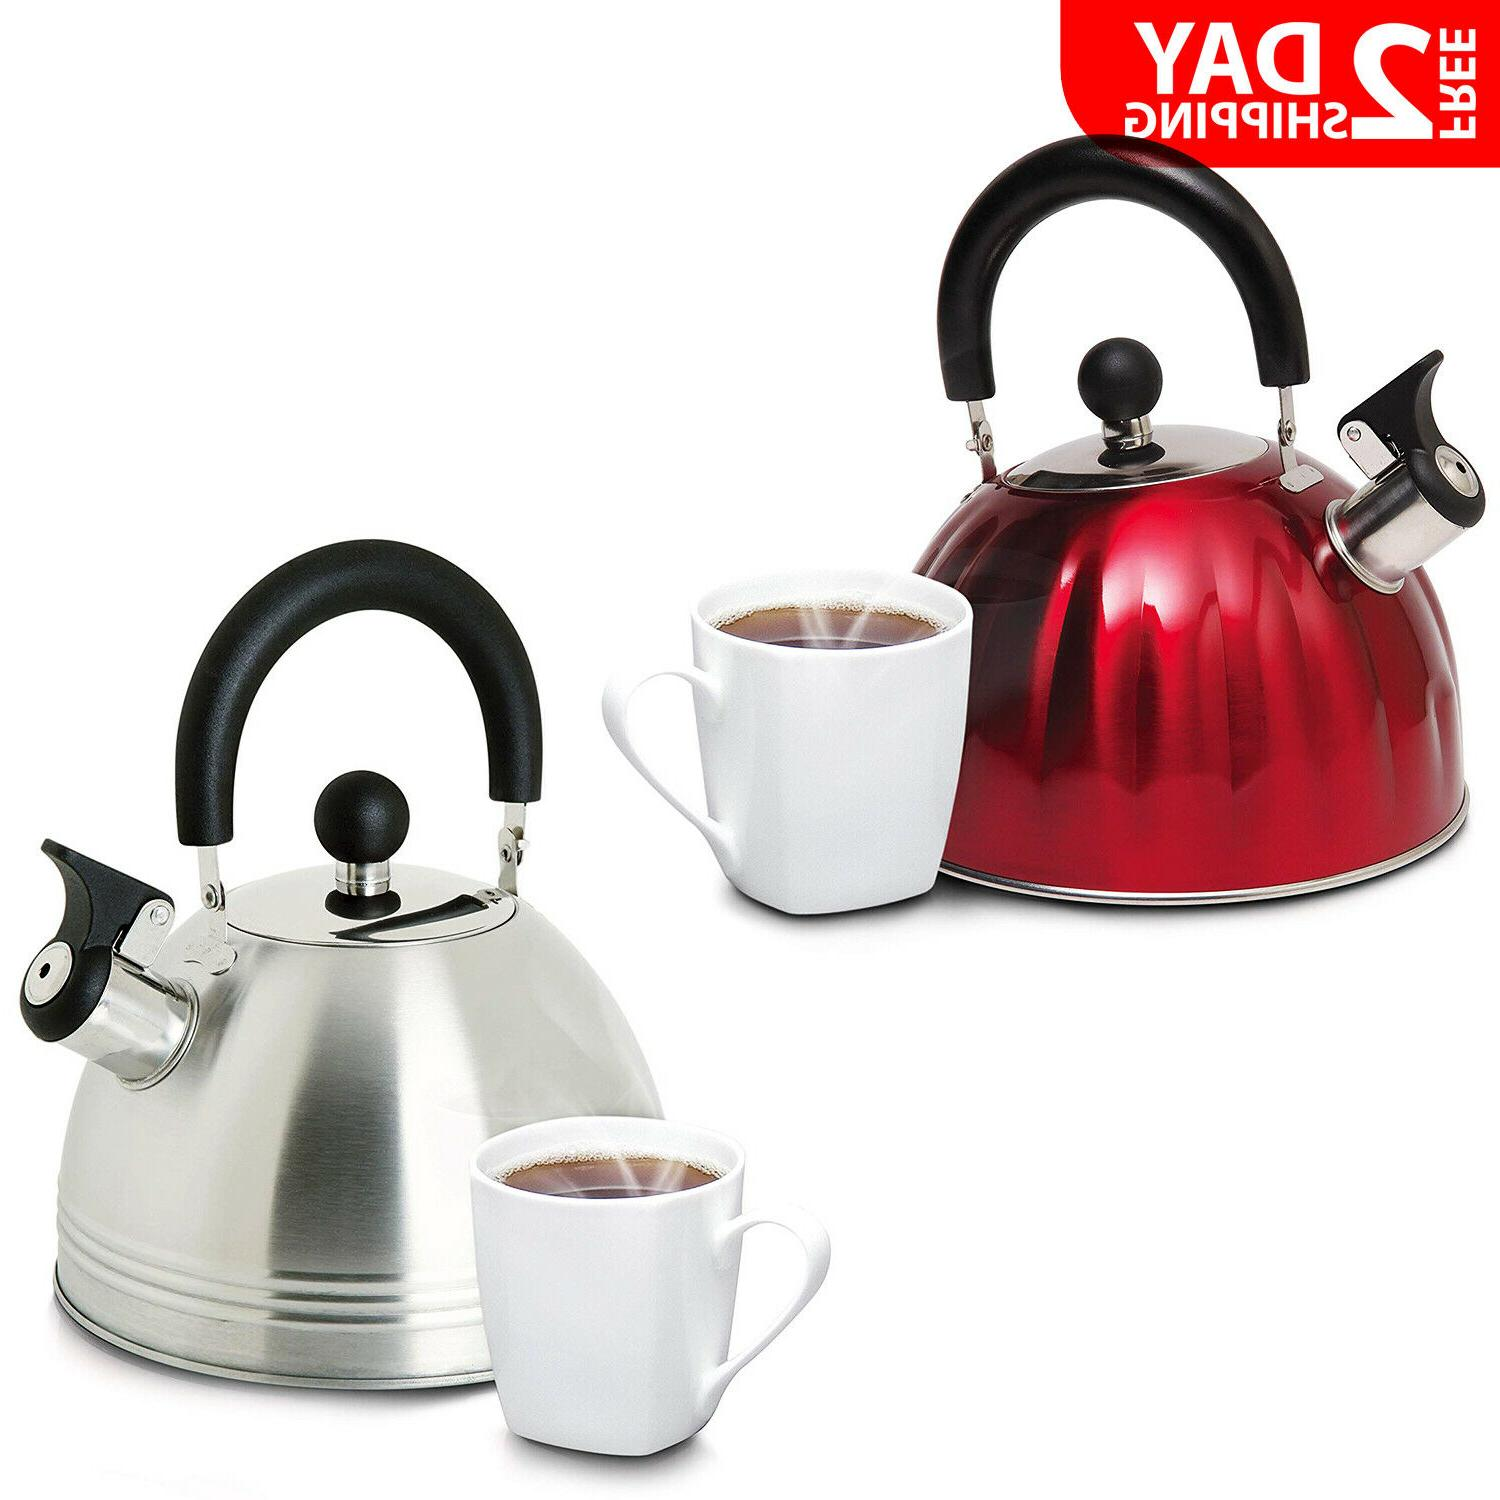 stainless steel whistling tea kettle hot water